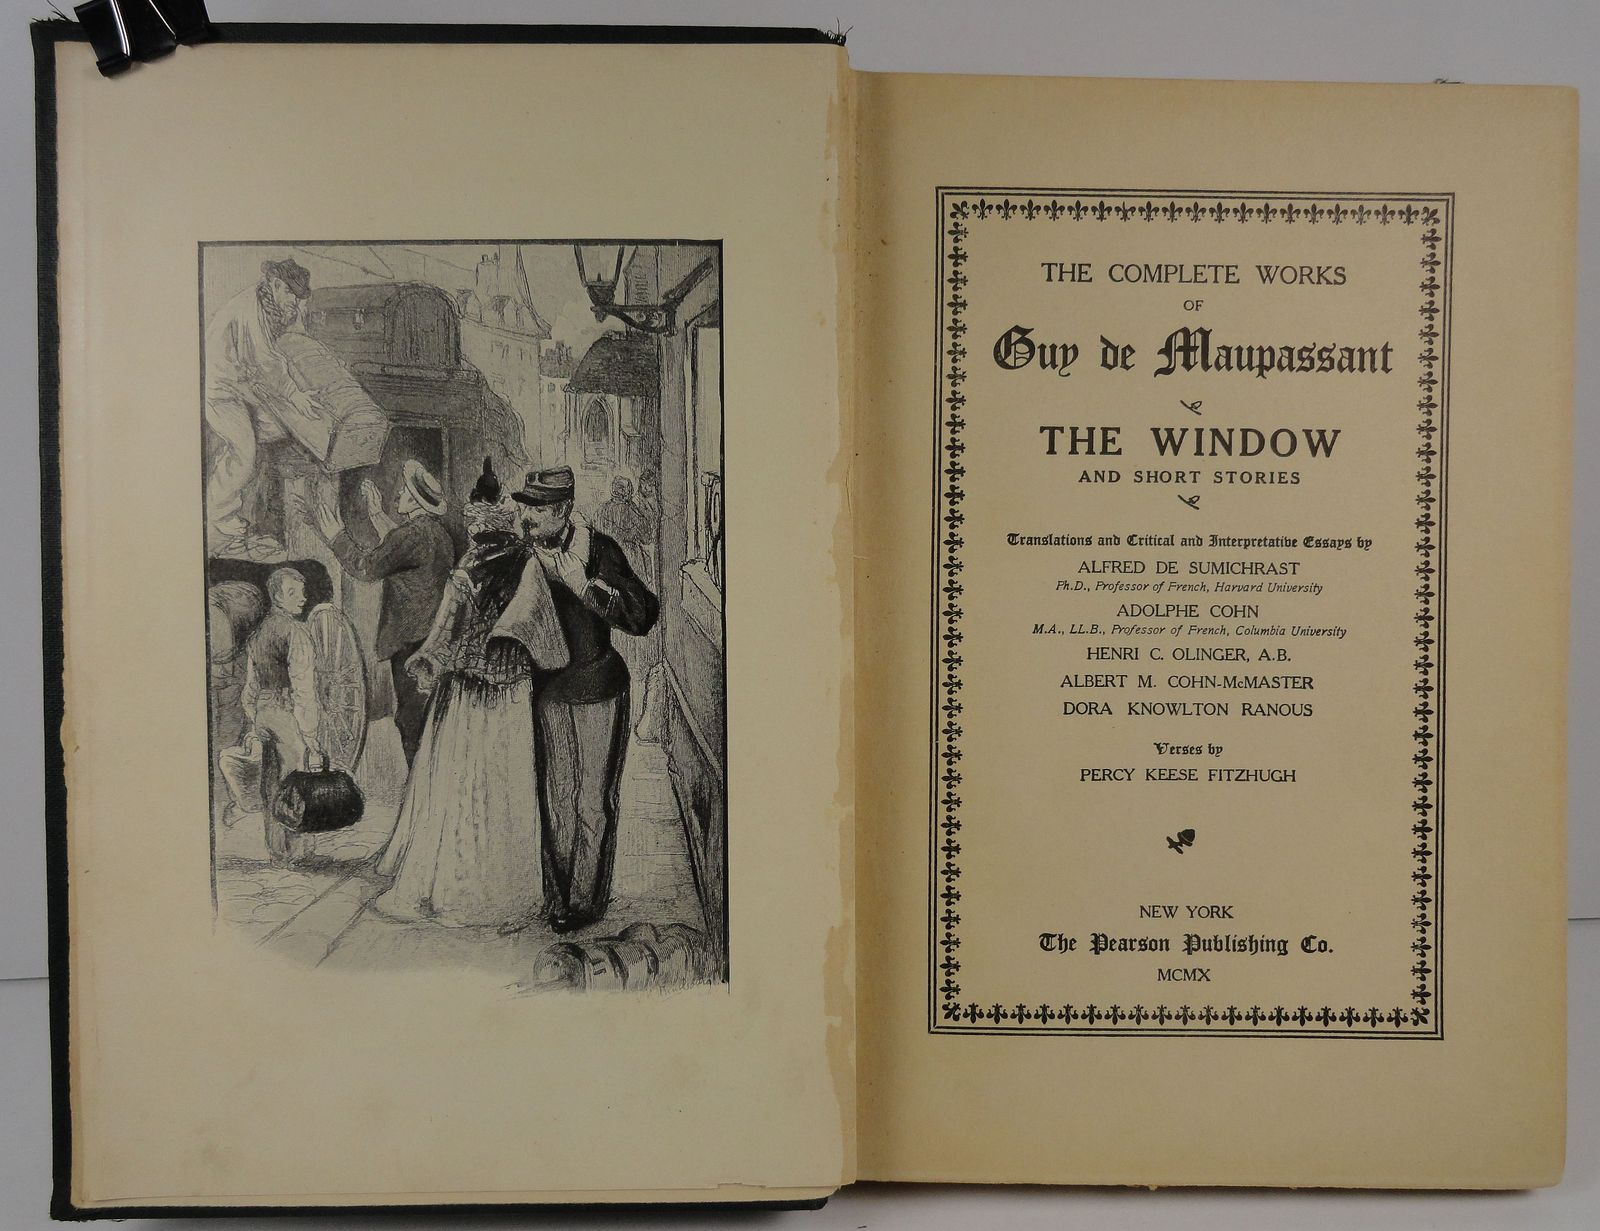 Complete Works of Guy de Maupassant The Window Monsieur Parent